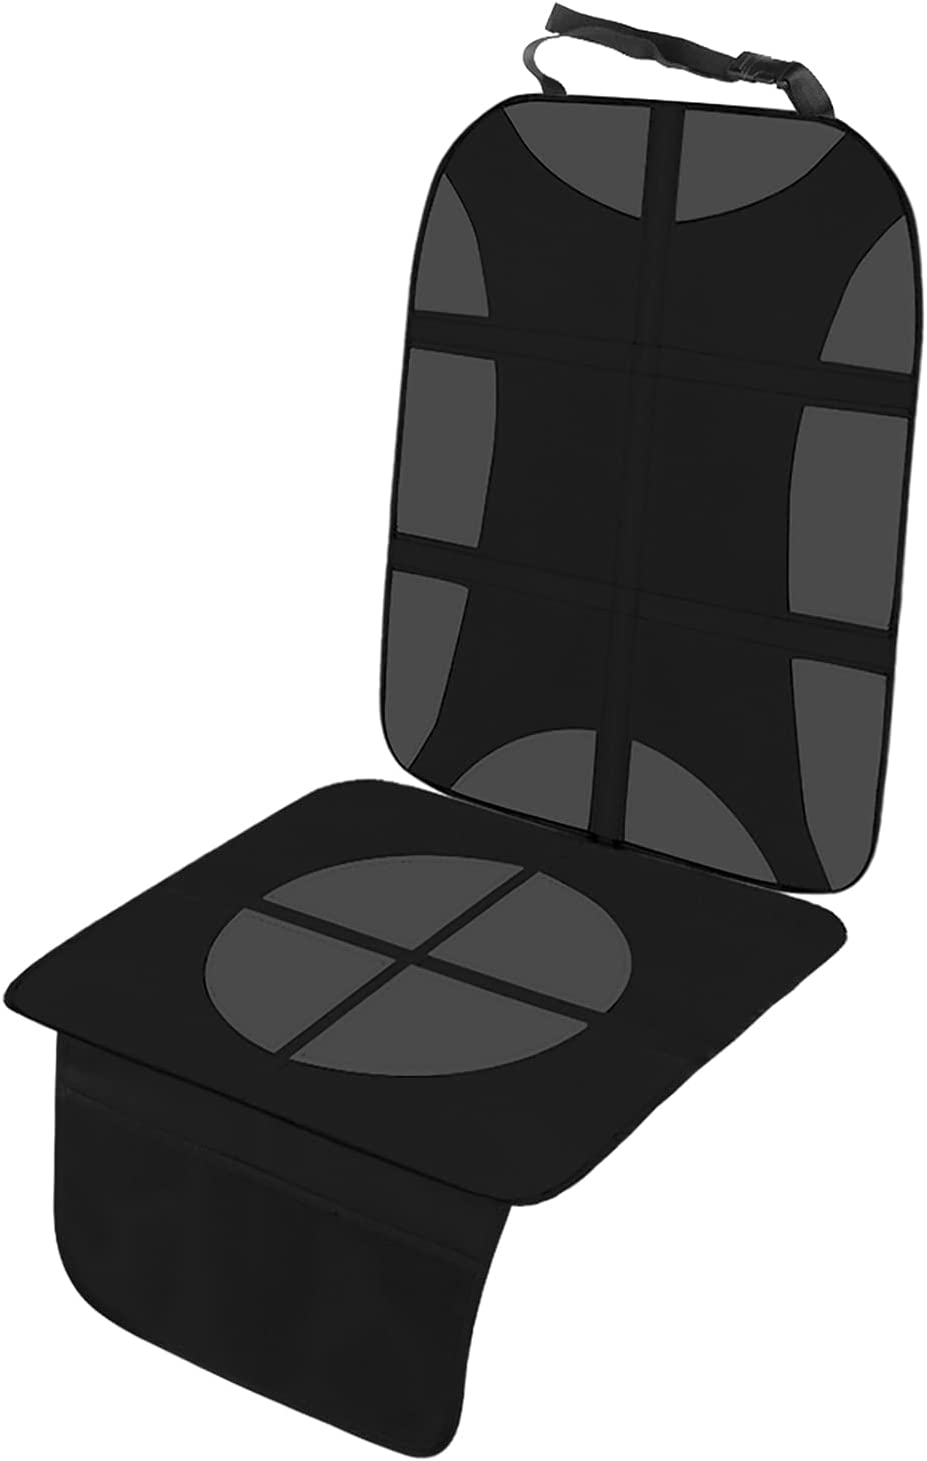 Punvot Protector Asiento Coche, Protector Coche Silla Bebe, Protector Asiento Coche Niños Funda Coche Silla Delantero Universal Coche Protector Asiento Trasero Coche para Asientos de Coche de Bebé